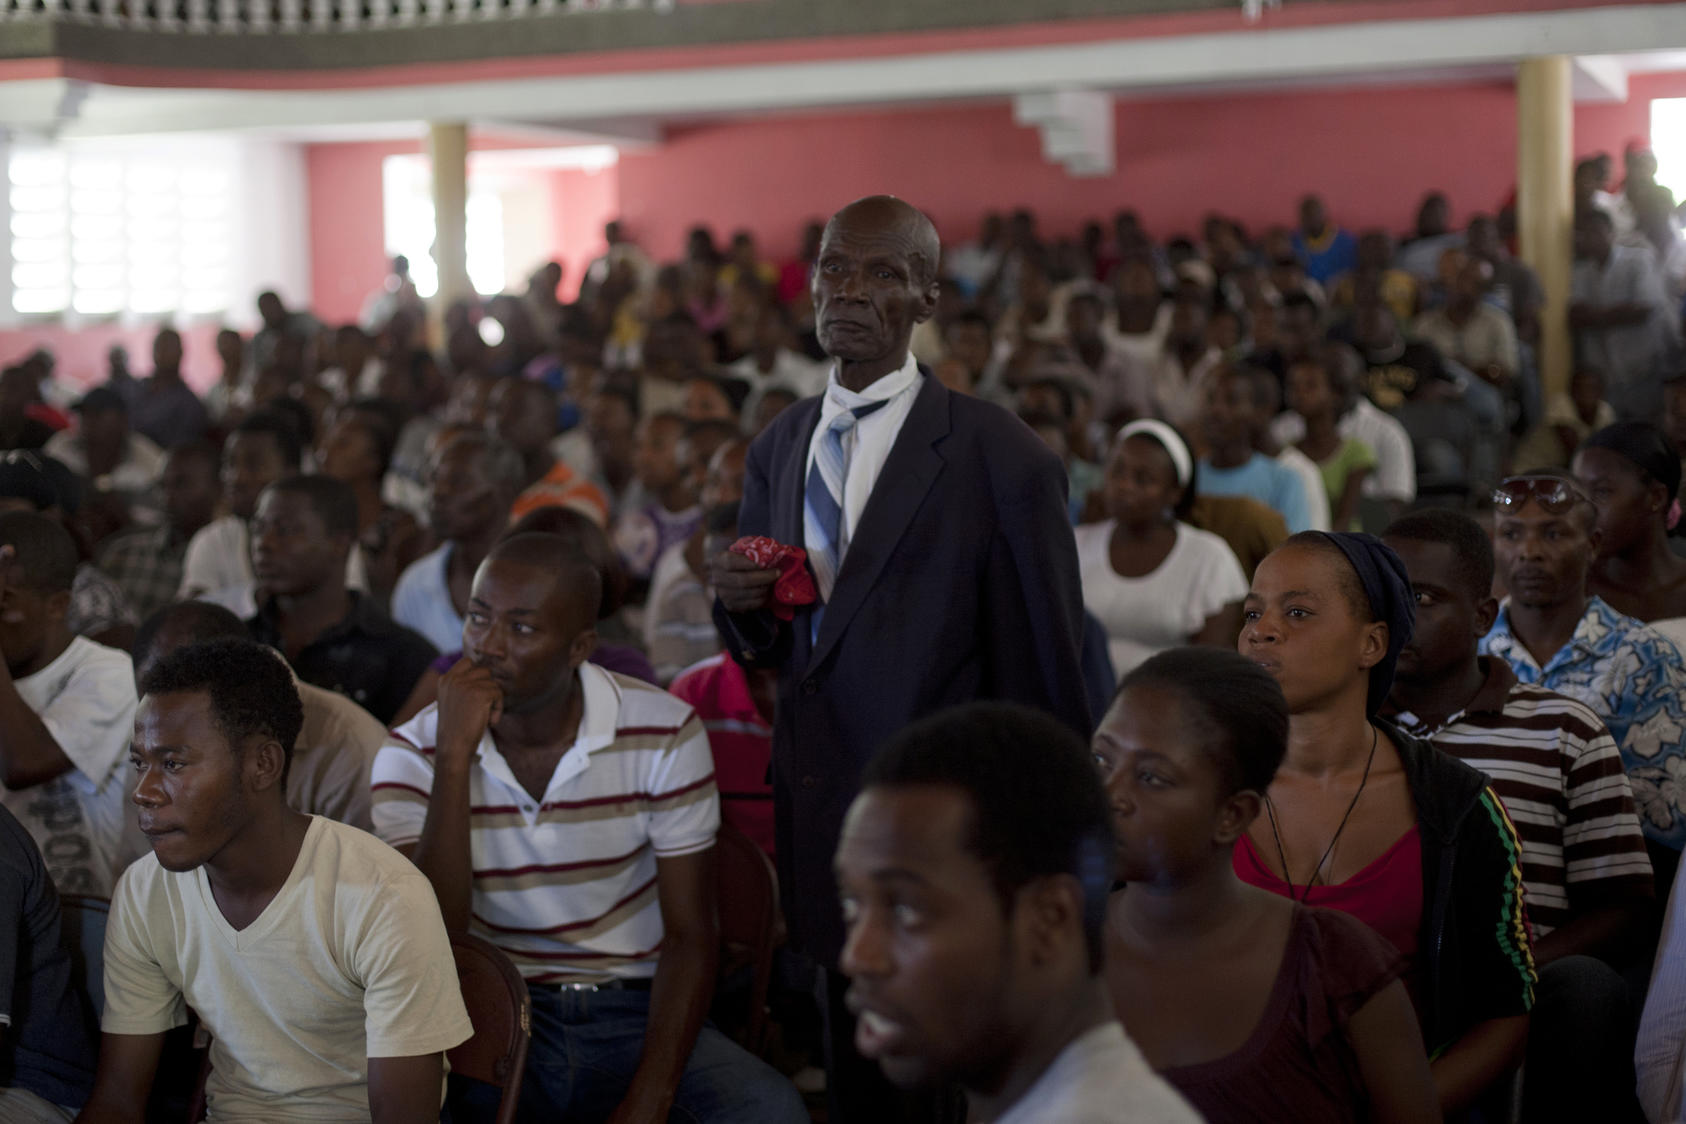 Audience of a courtroom during a trial of police officers, who are charged with murder or attempted murder for a prison massacre, at the Catholic Cultural Center Saint-Louis in Haiti, Oct. 2011. Photo Courtesy of The New York Times/Andres Martinez Casares